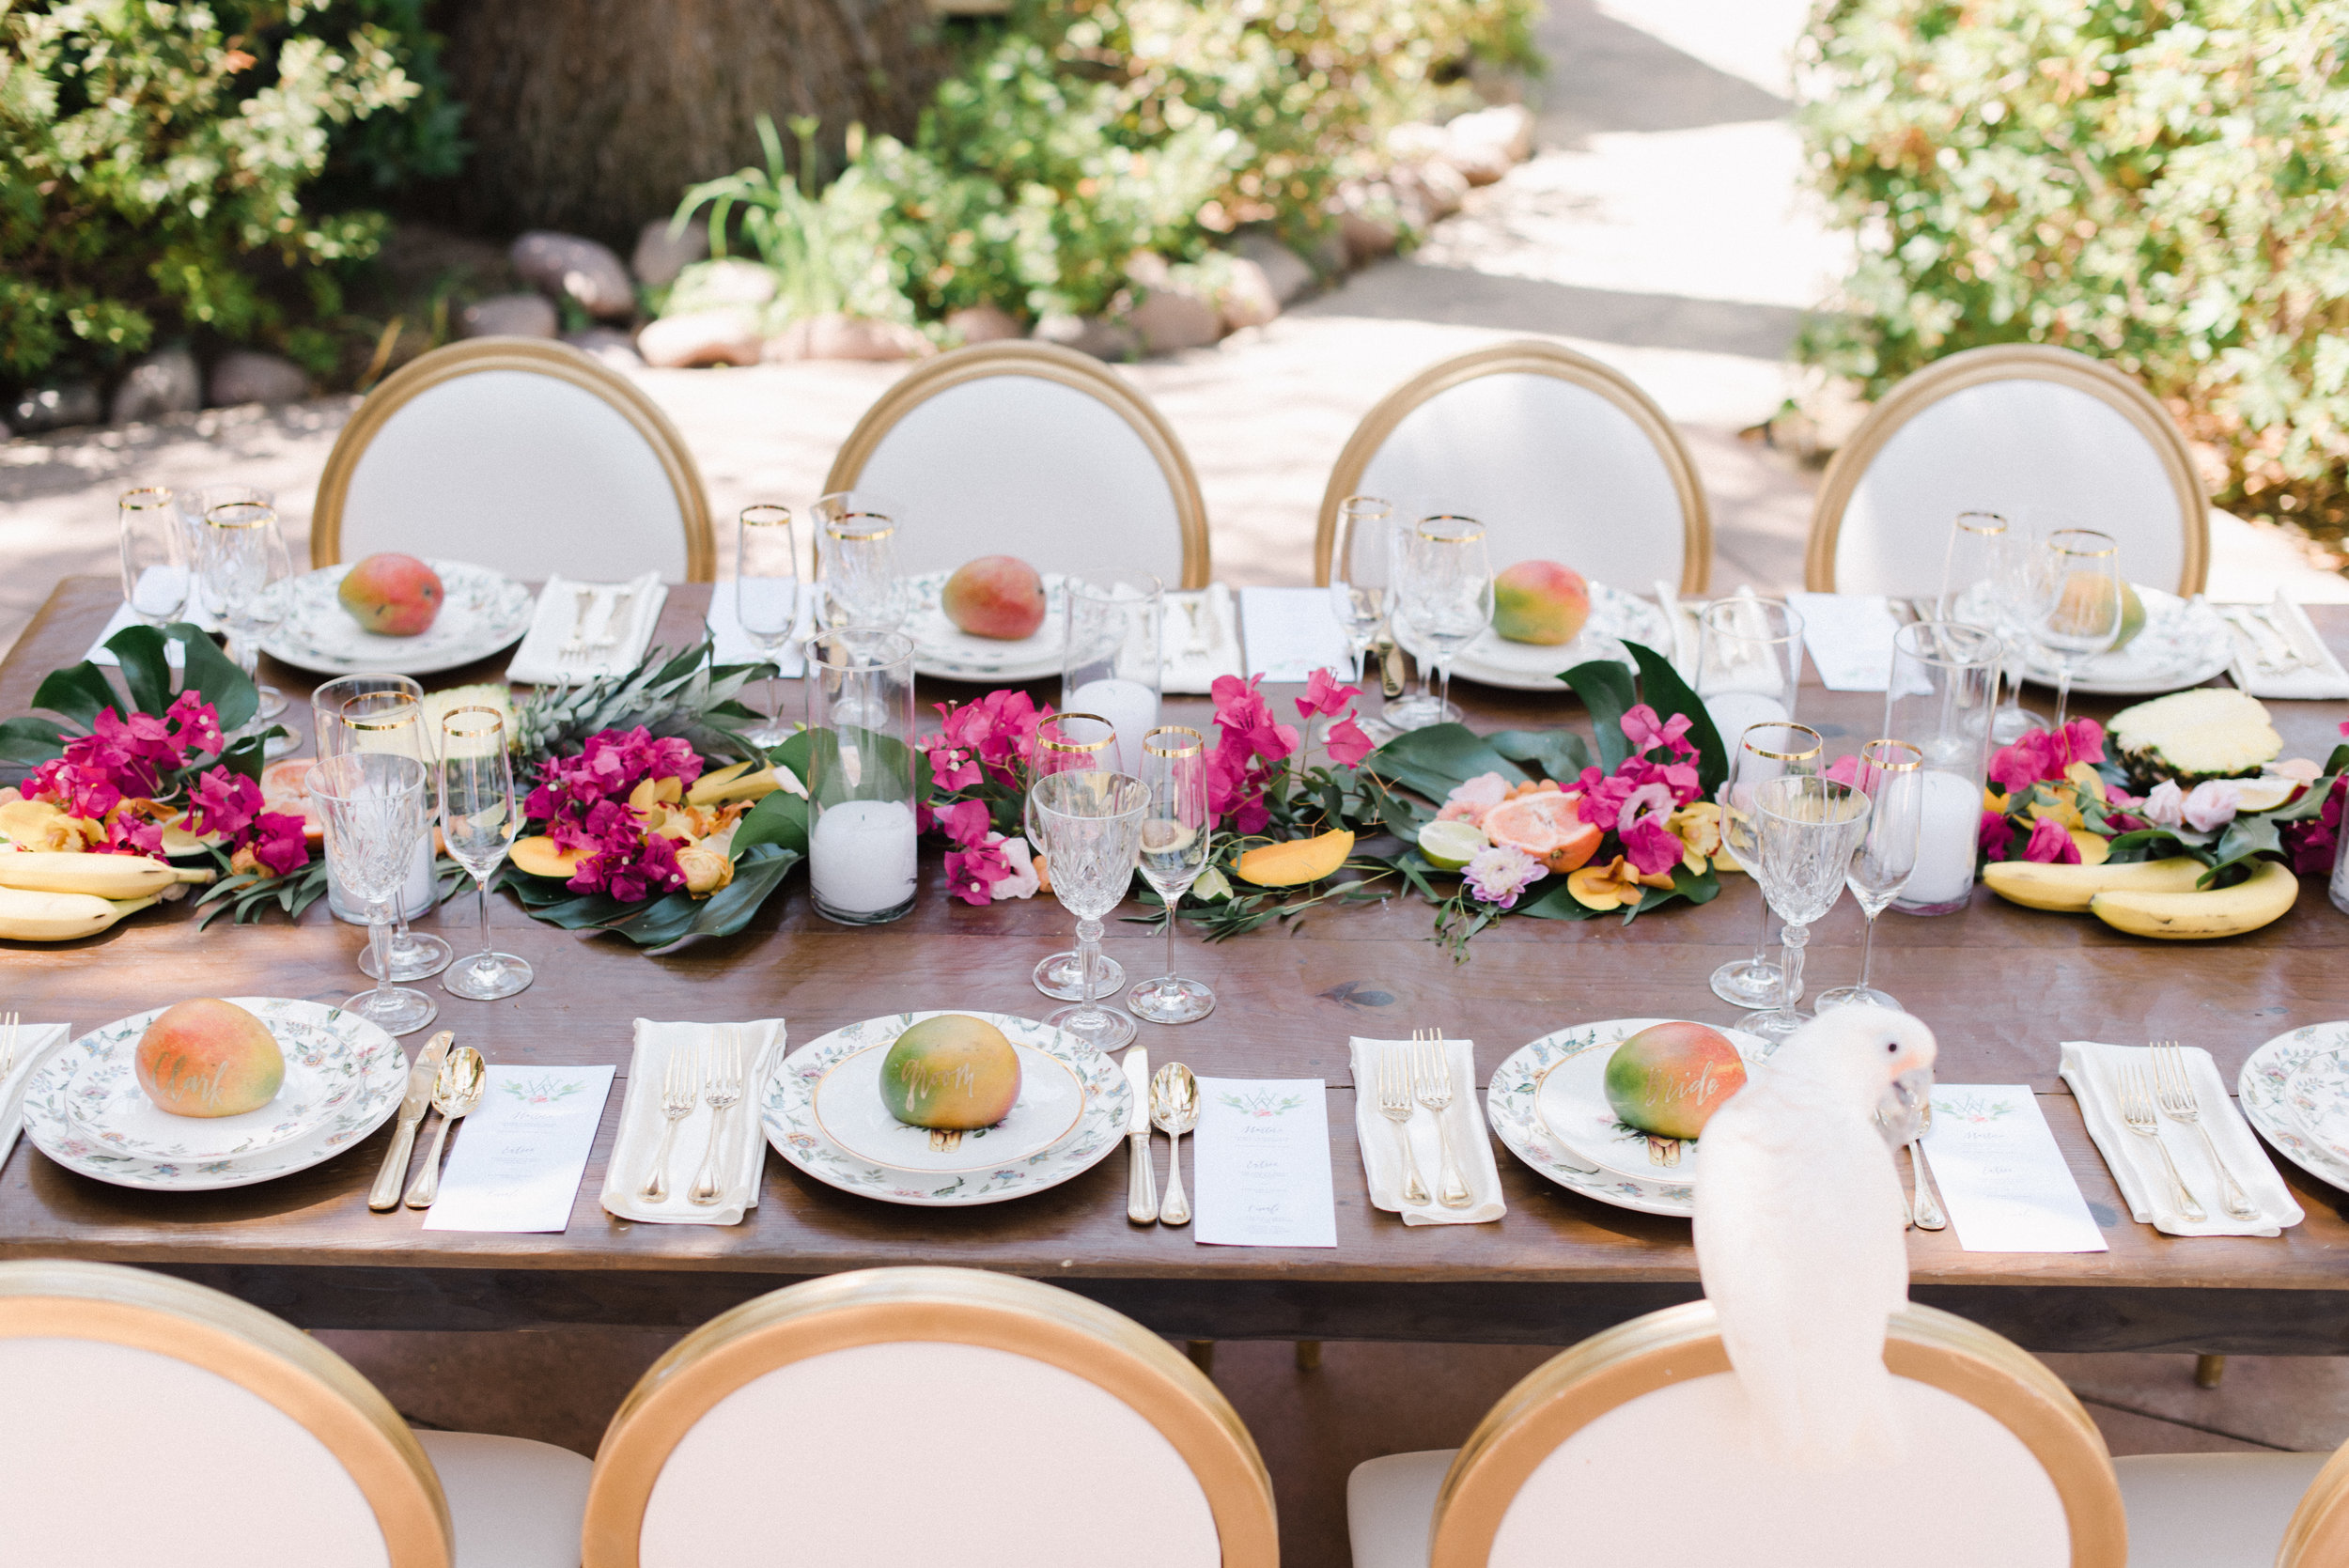 Havana inspired wedding with bougainvillea.jpg